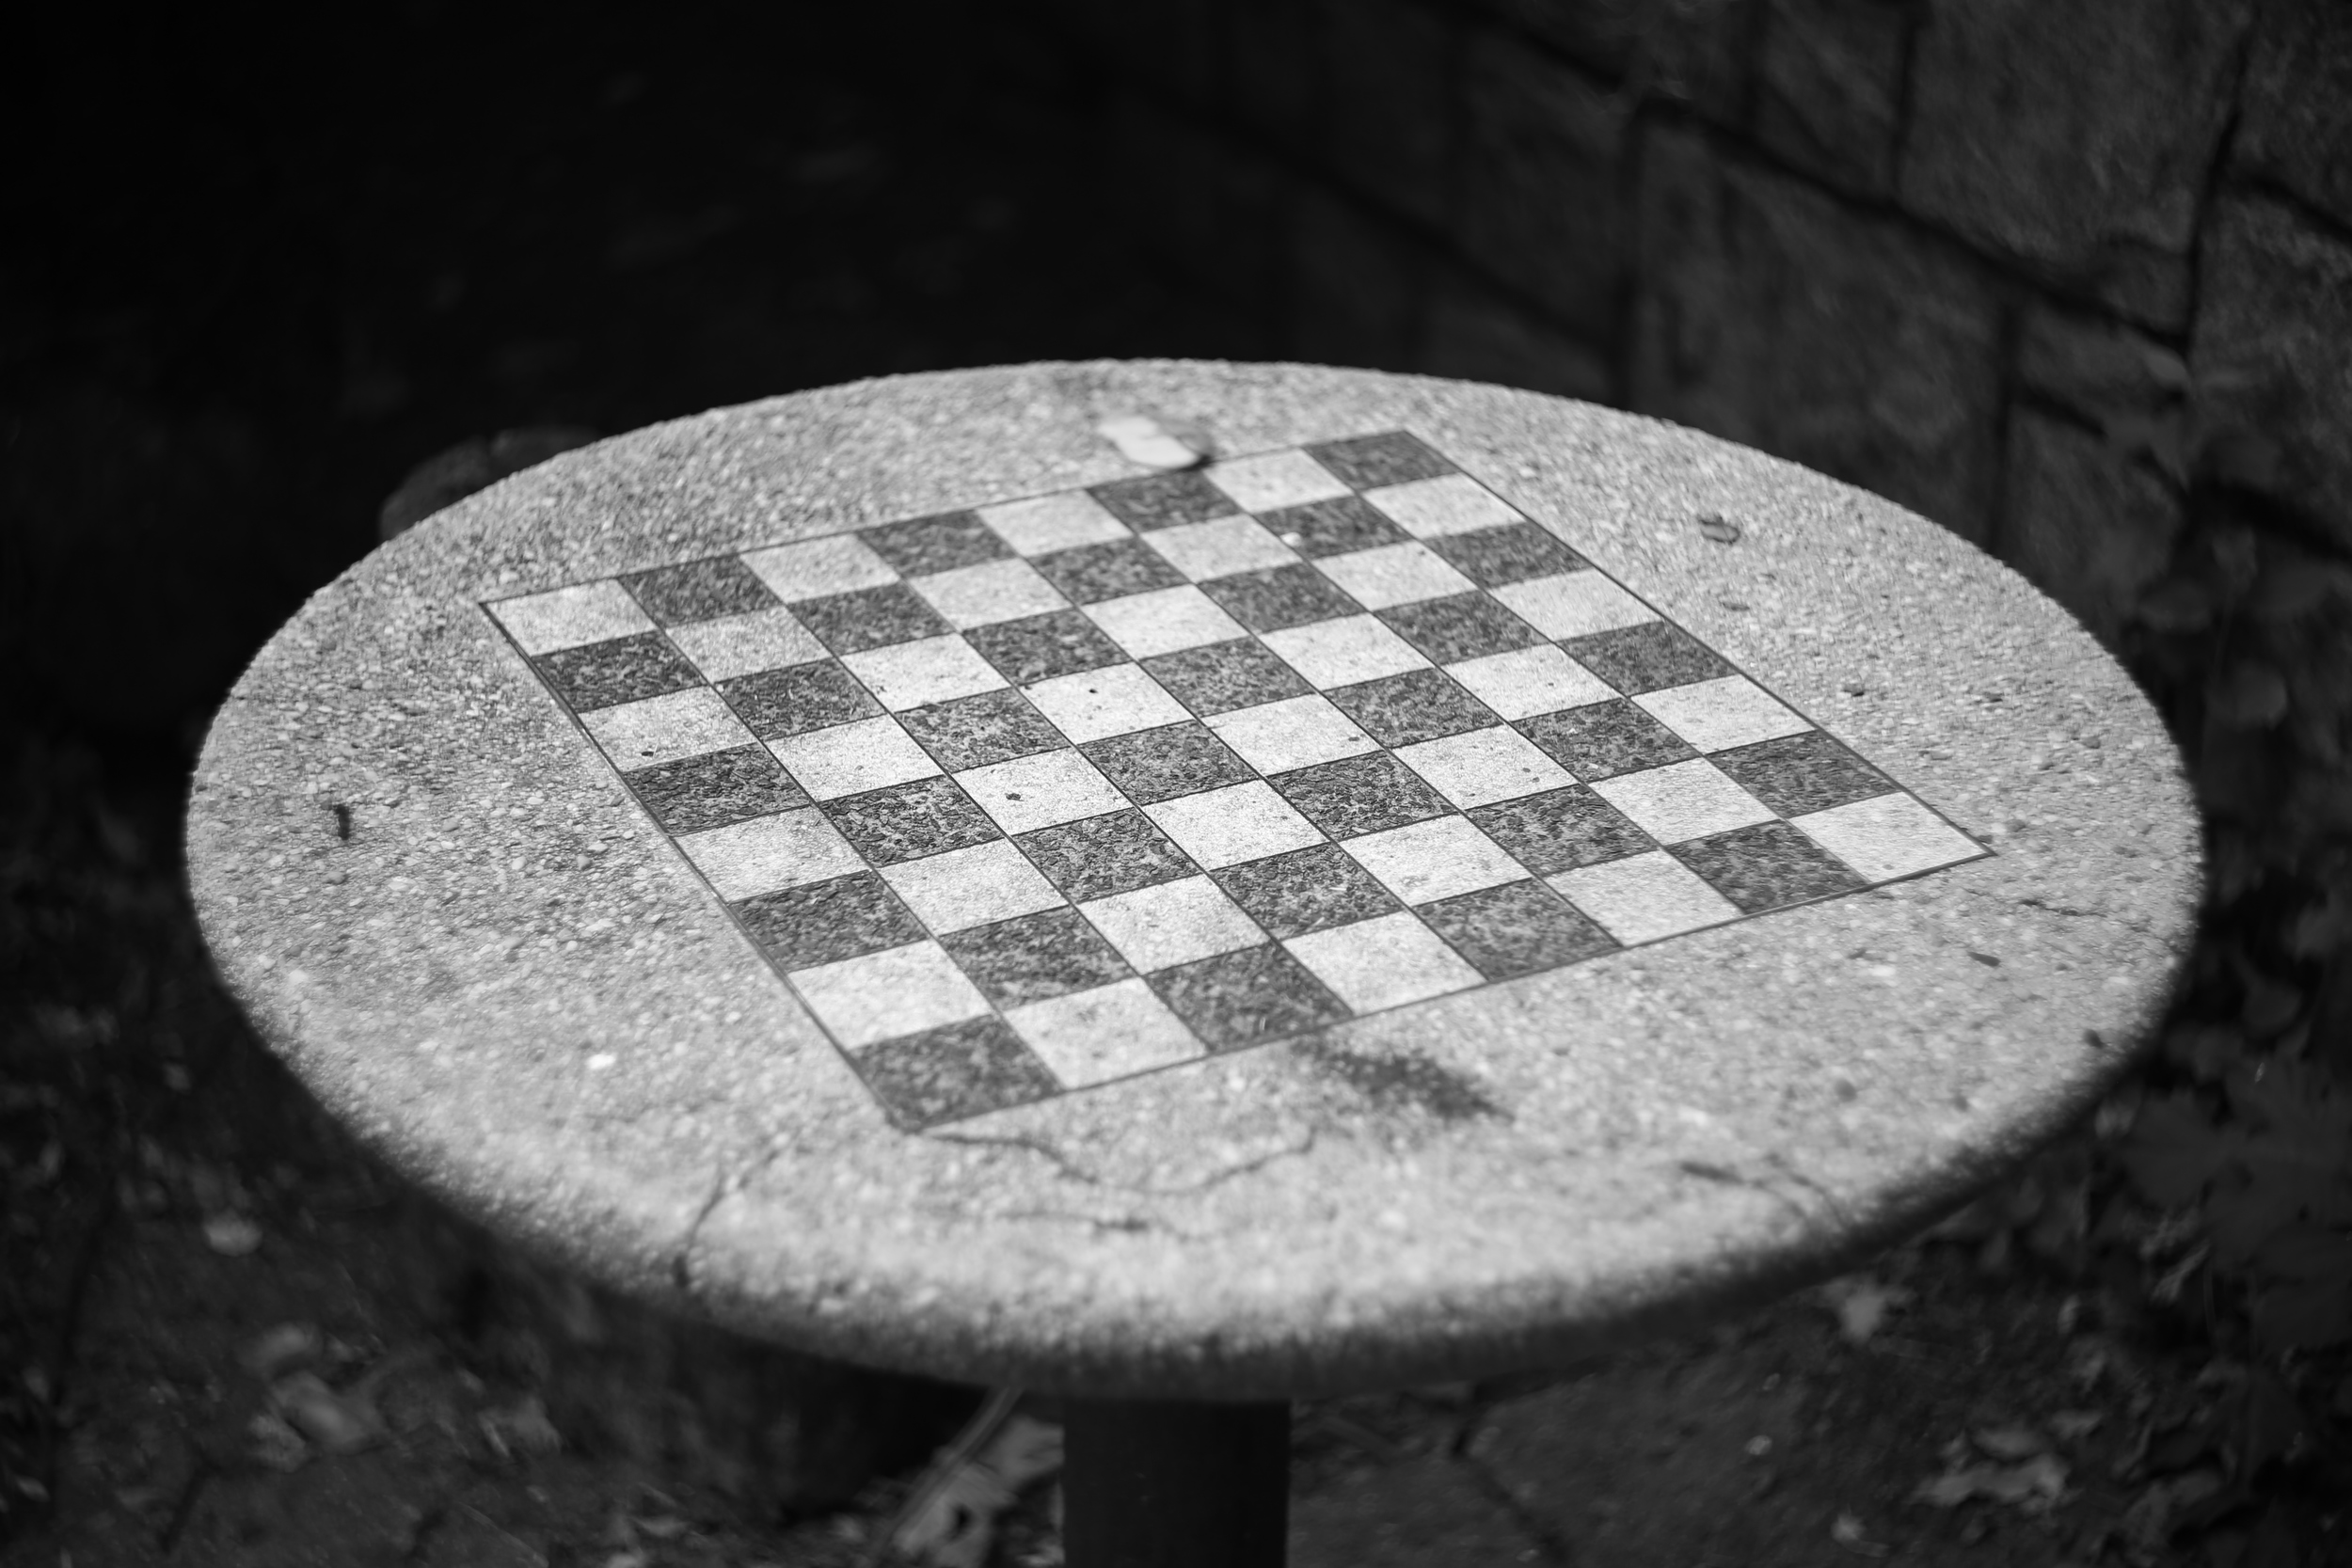 Forgotten Chess Table